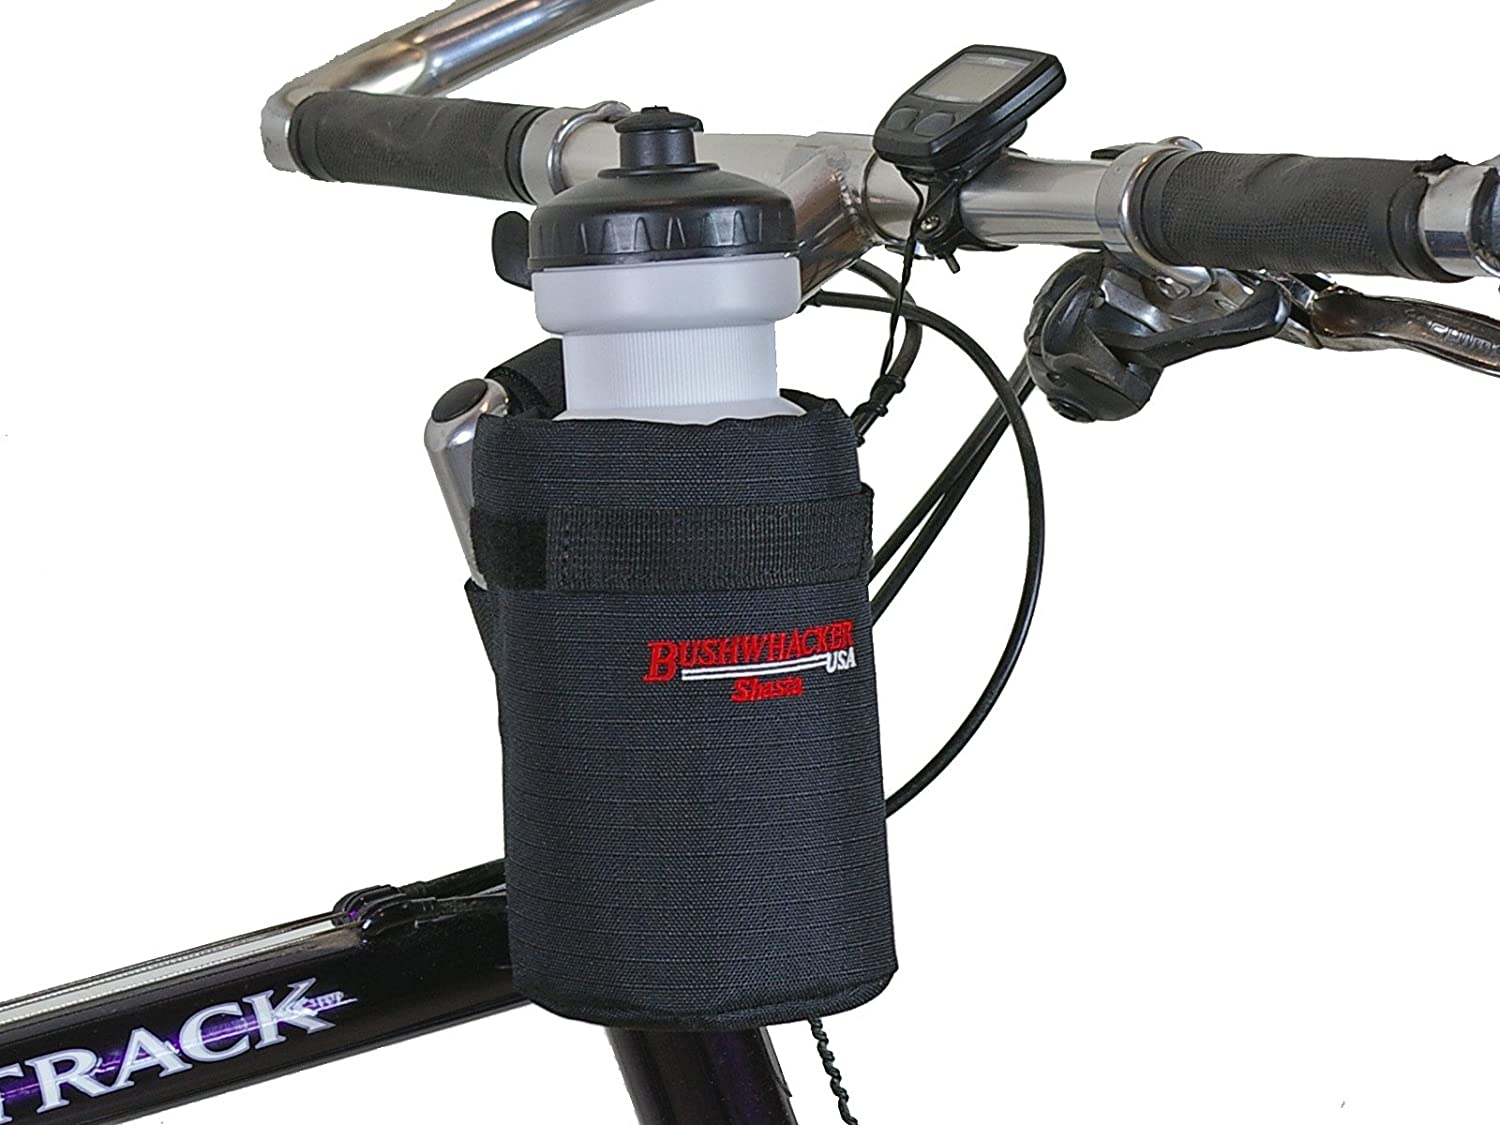 Bushwhacker Shasta Black - Insulated Bike Water Bottle Holder w/ 20 oz. Bottle